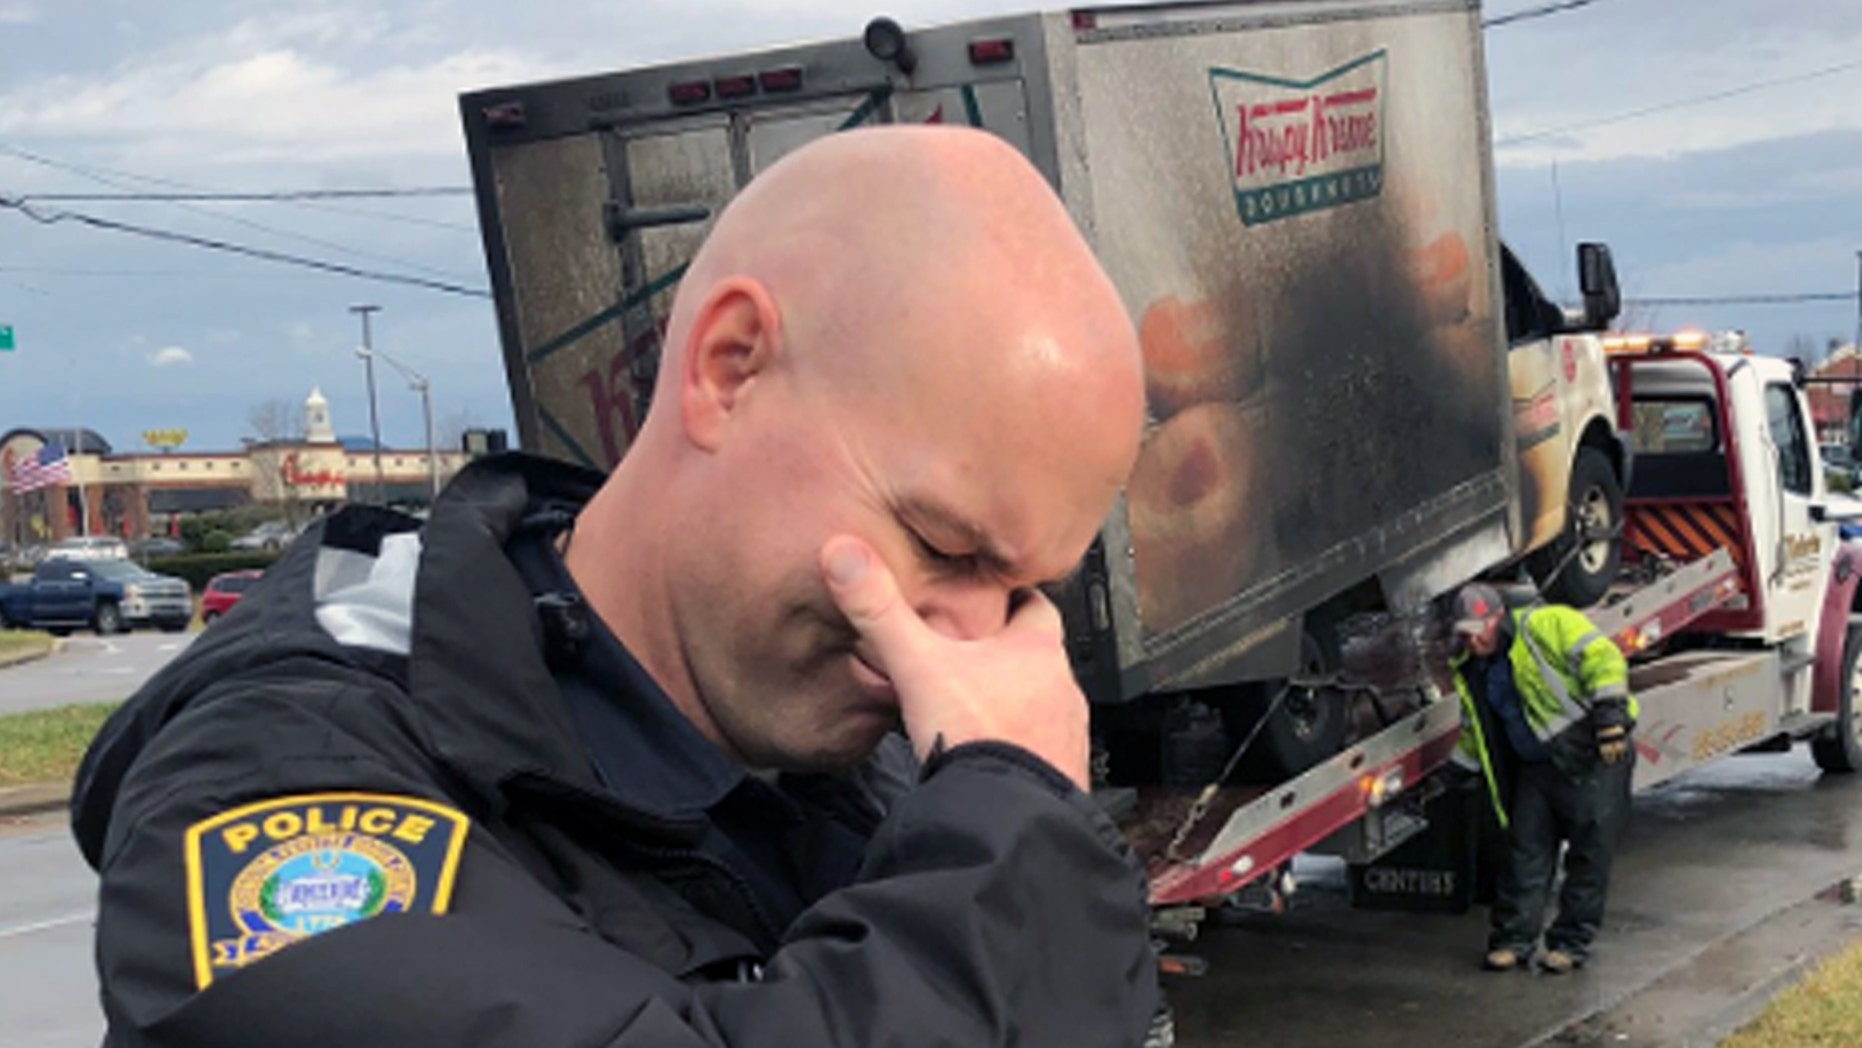 Police mourn after doughnut van perishes in blaze